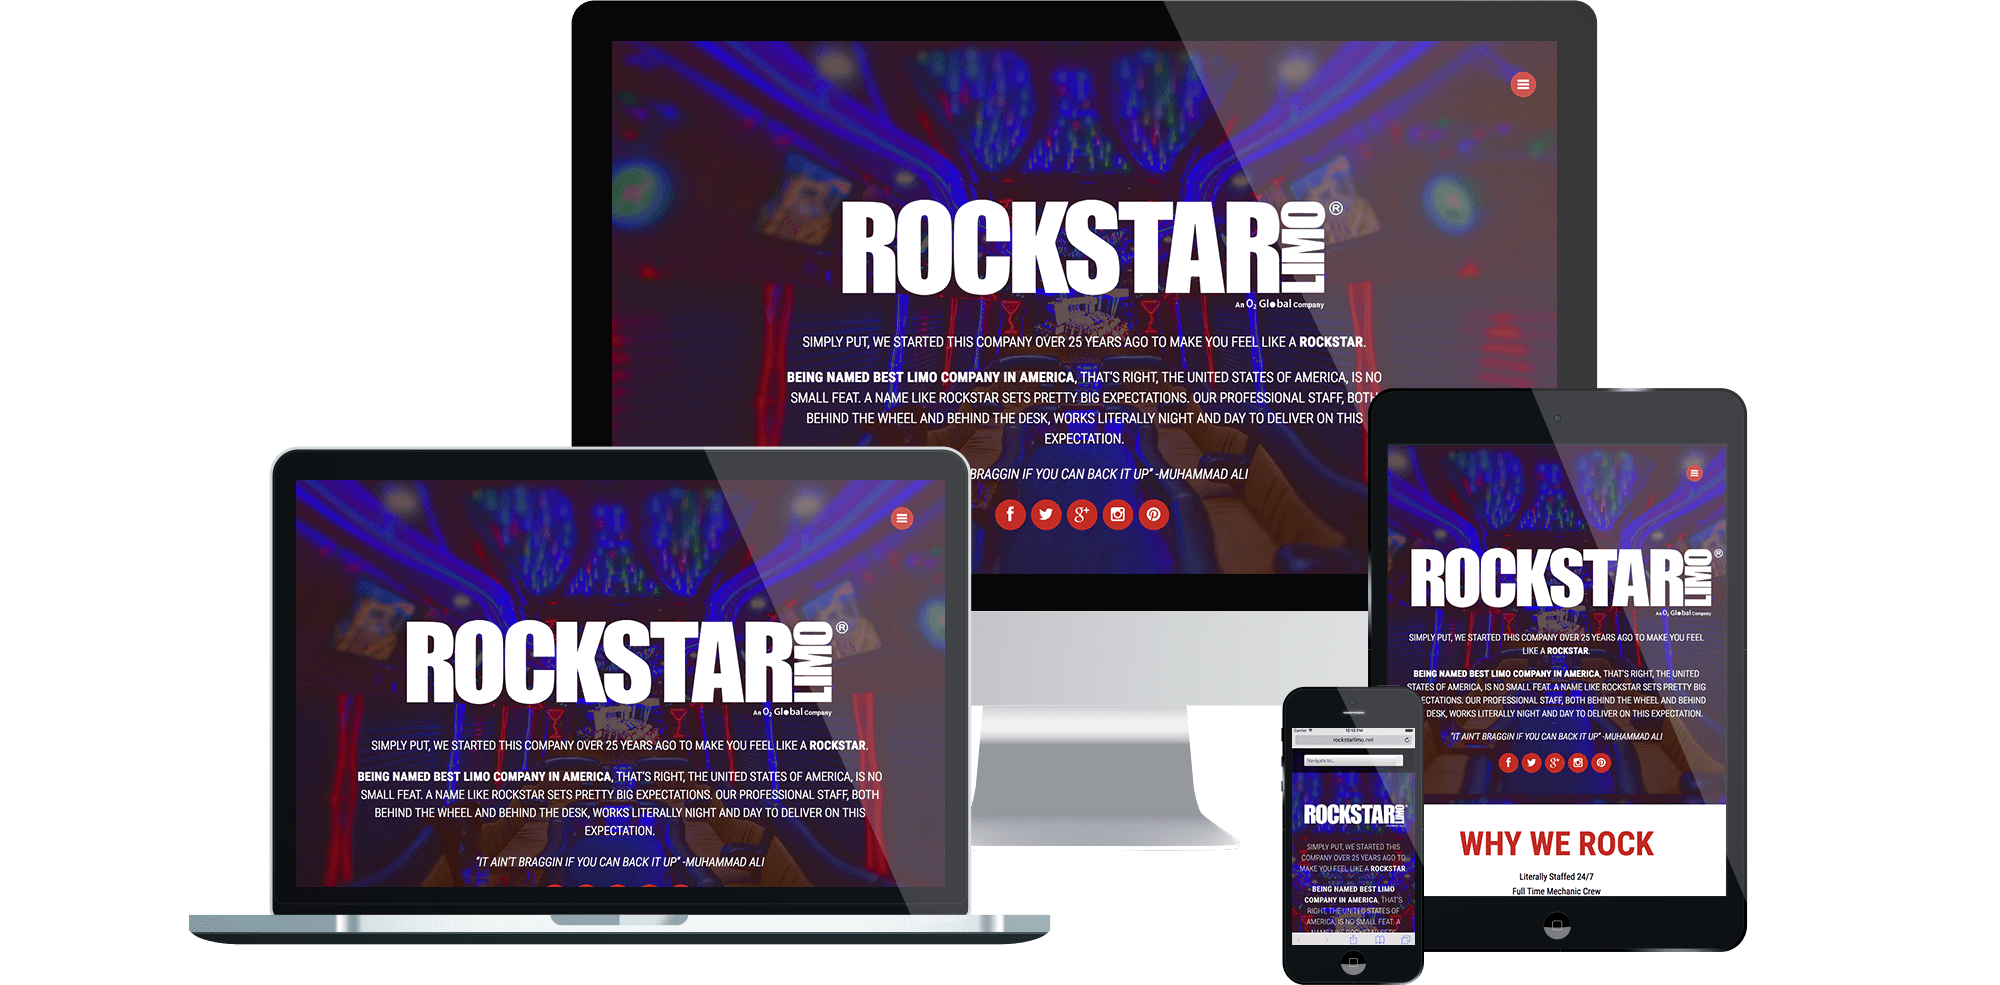 Rockstar Limo - Responsive Wordpress Web Design and Development